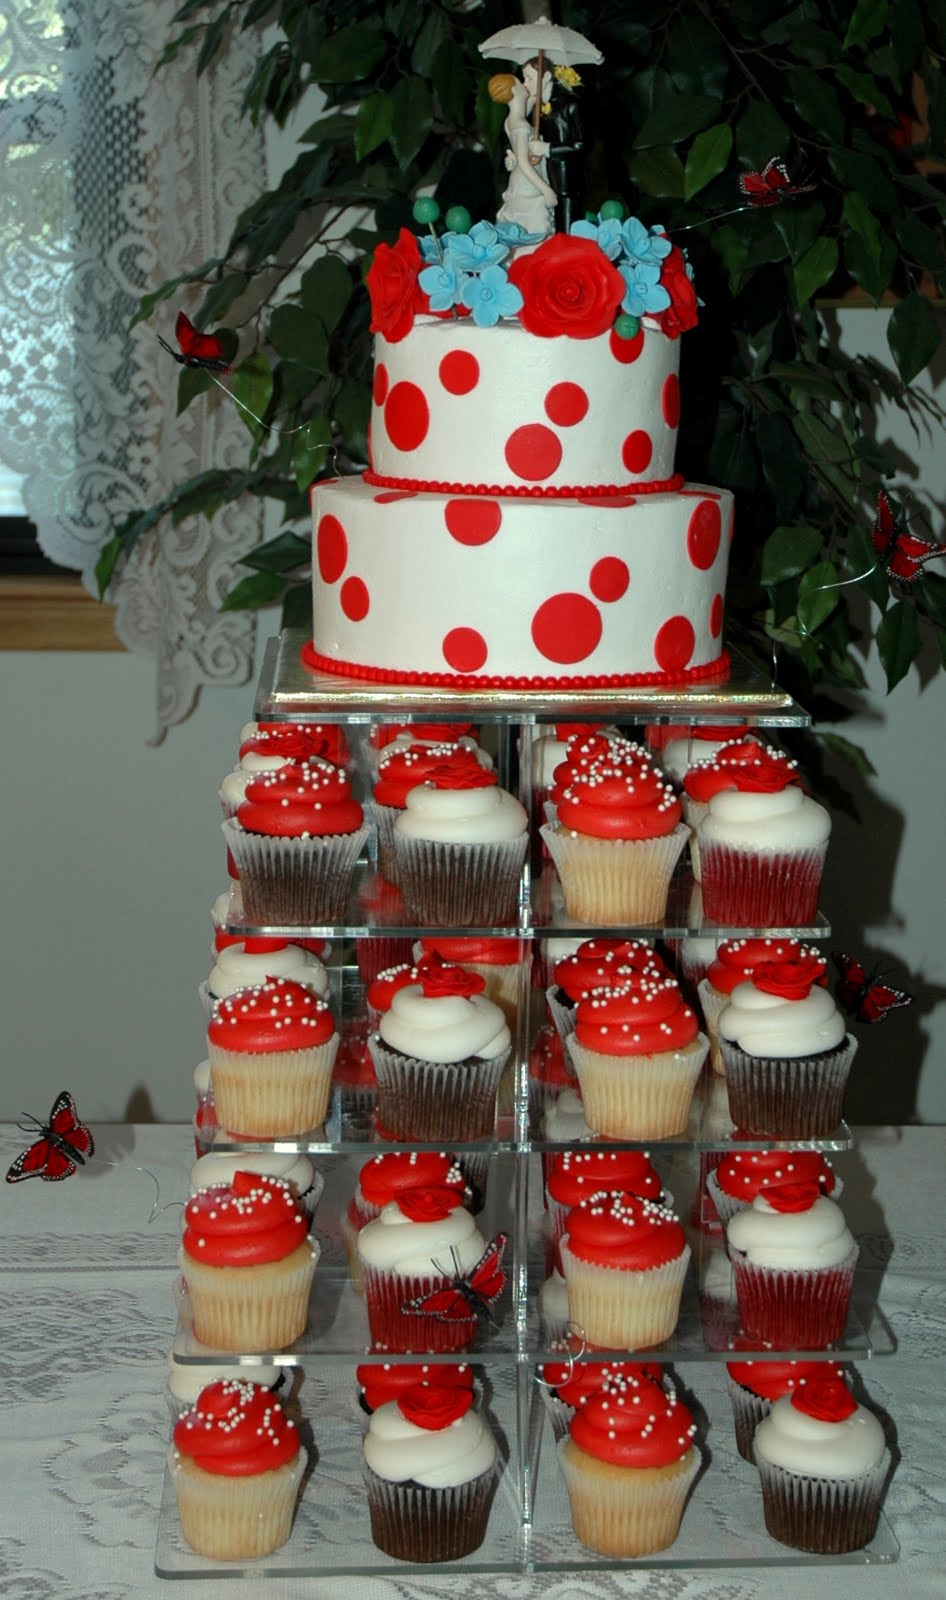 Taras cupcakes redwhite polkadot wedding cake with roses redwhite polkadot wedding cake with roses junglespirit Gallery